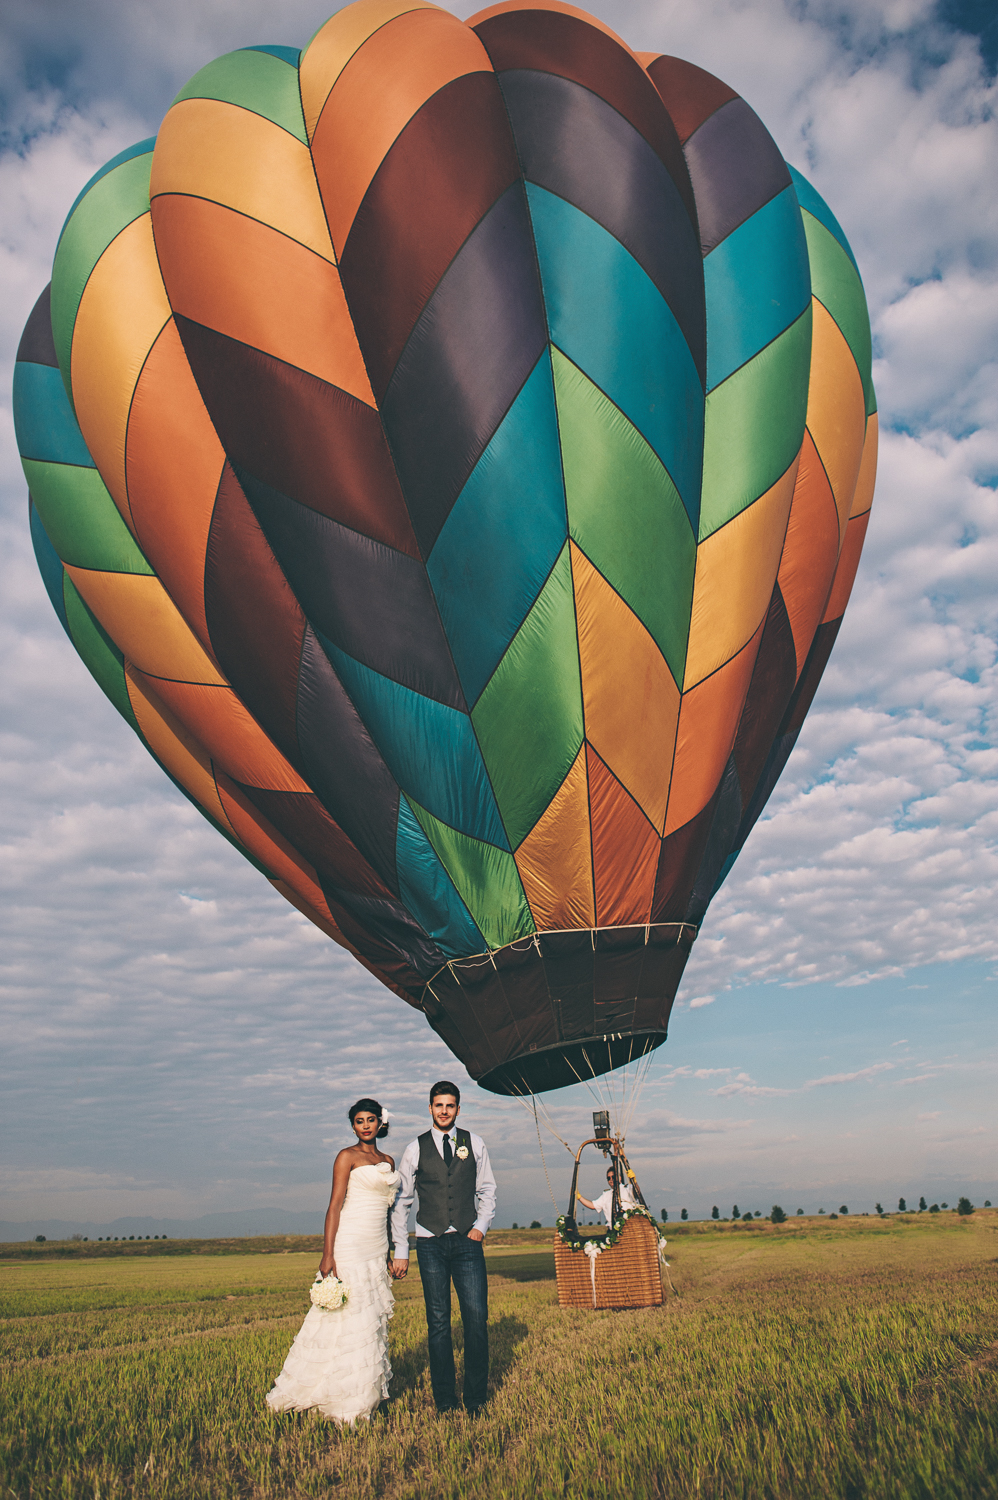 Hot Air Balloon Photo-26.jpg